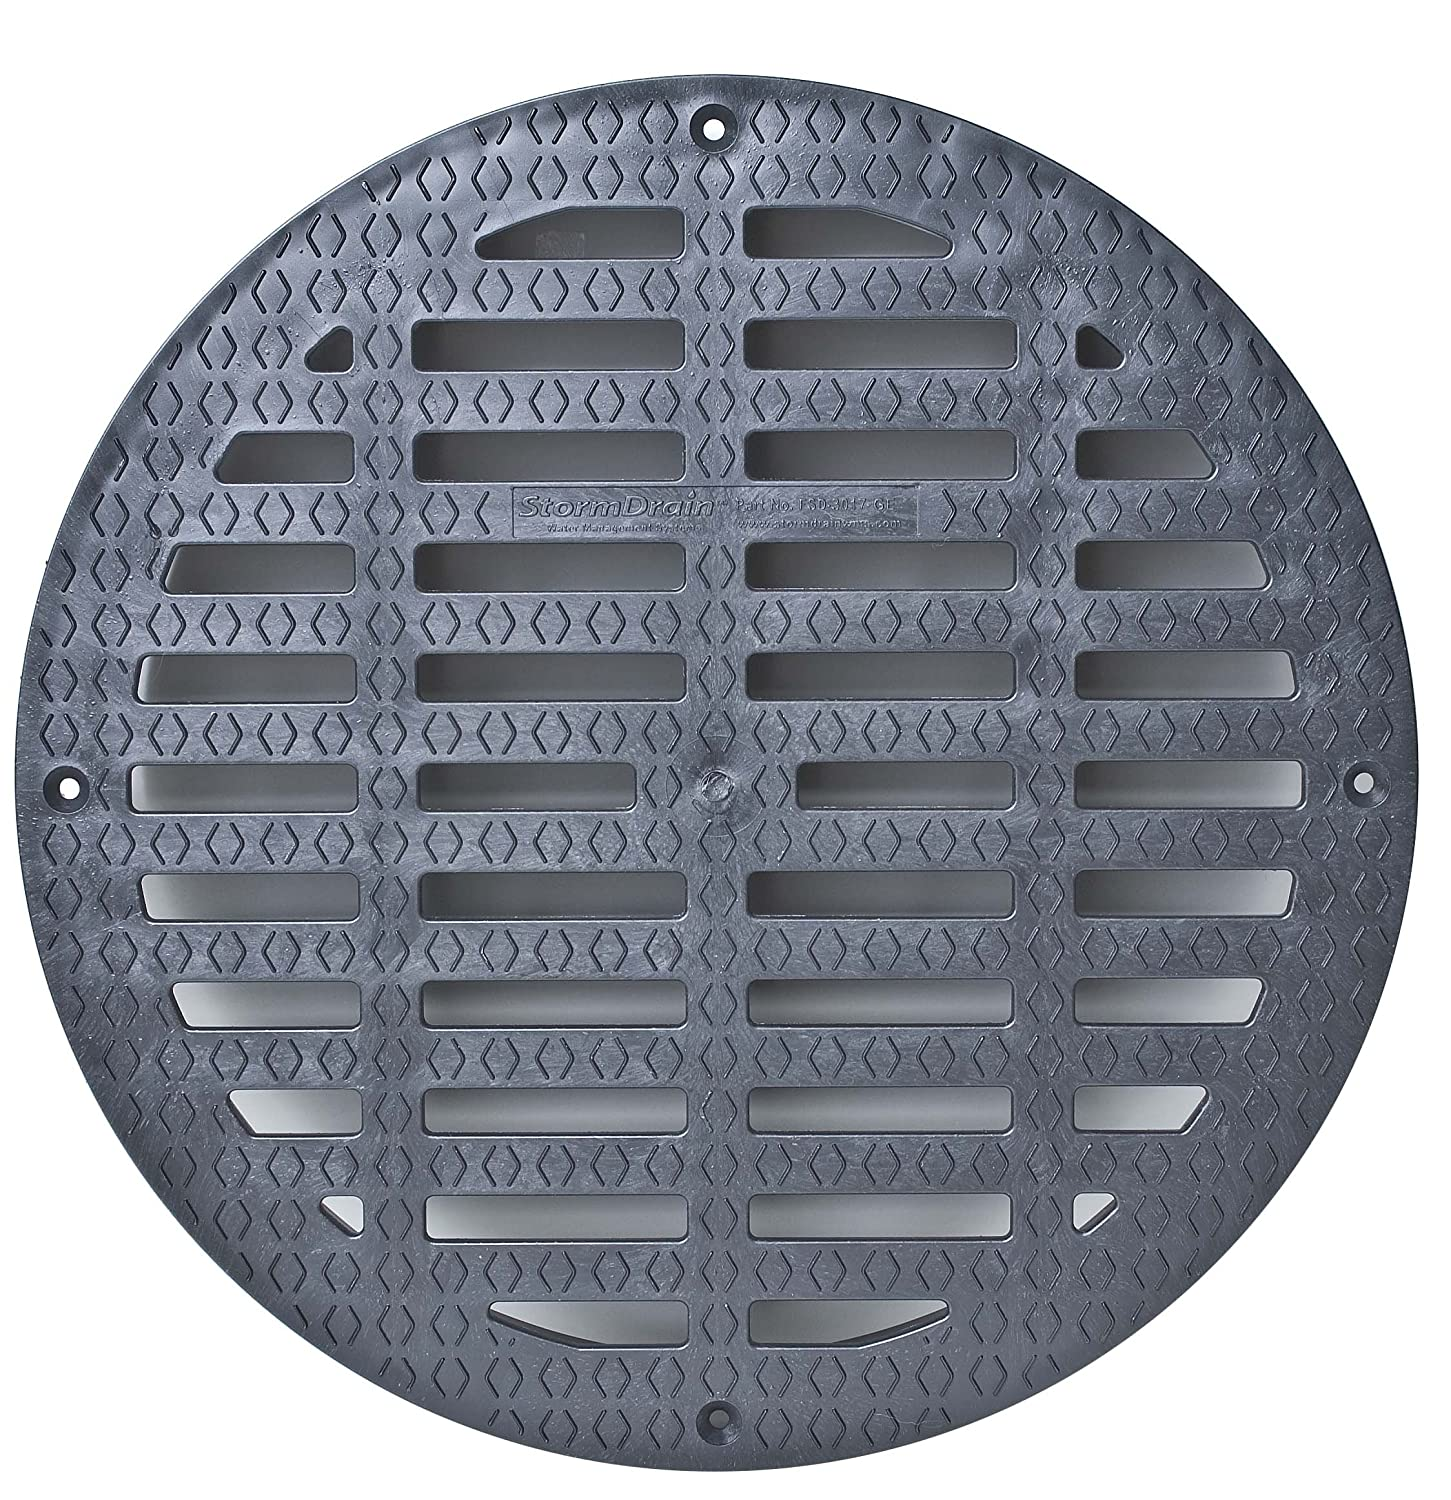 Storm Drain FSD-3017-G20B 20 Round Flat Grate for Catch Basin, Black StormDrain